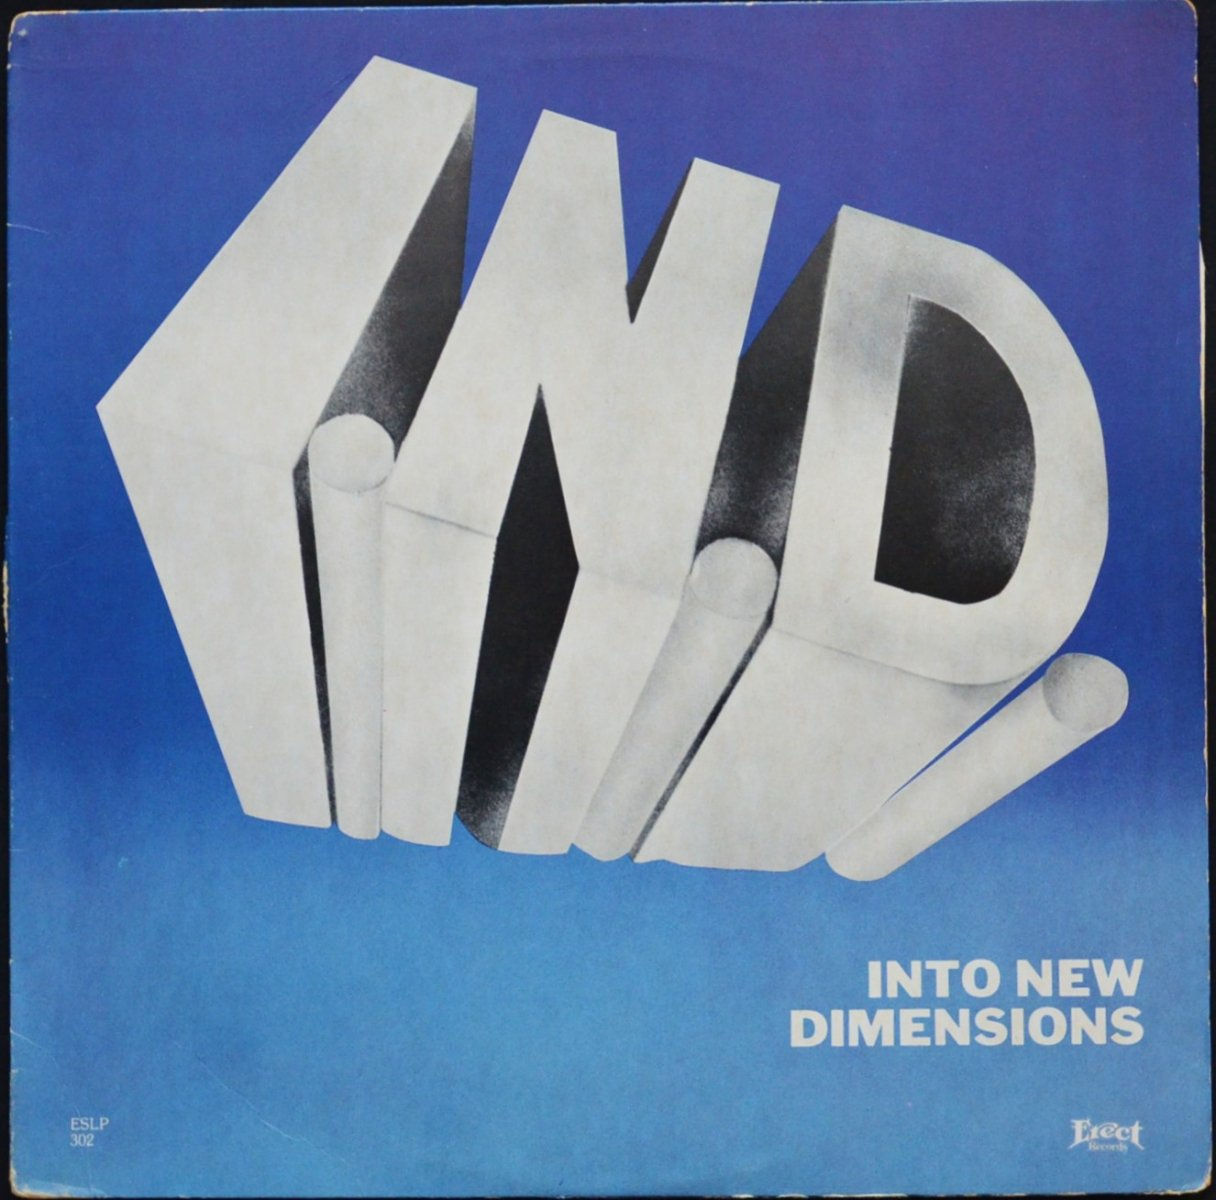 I.N.D. / INTO NEW DIMENSIONS (LP)